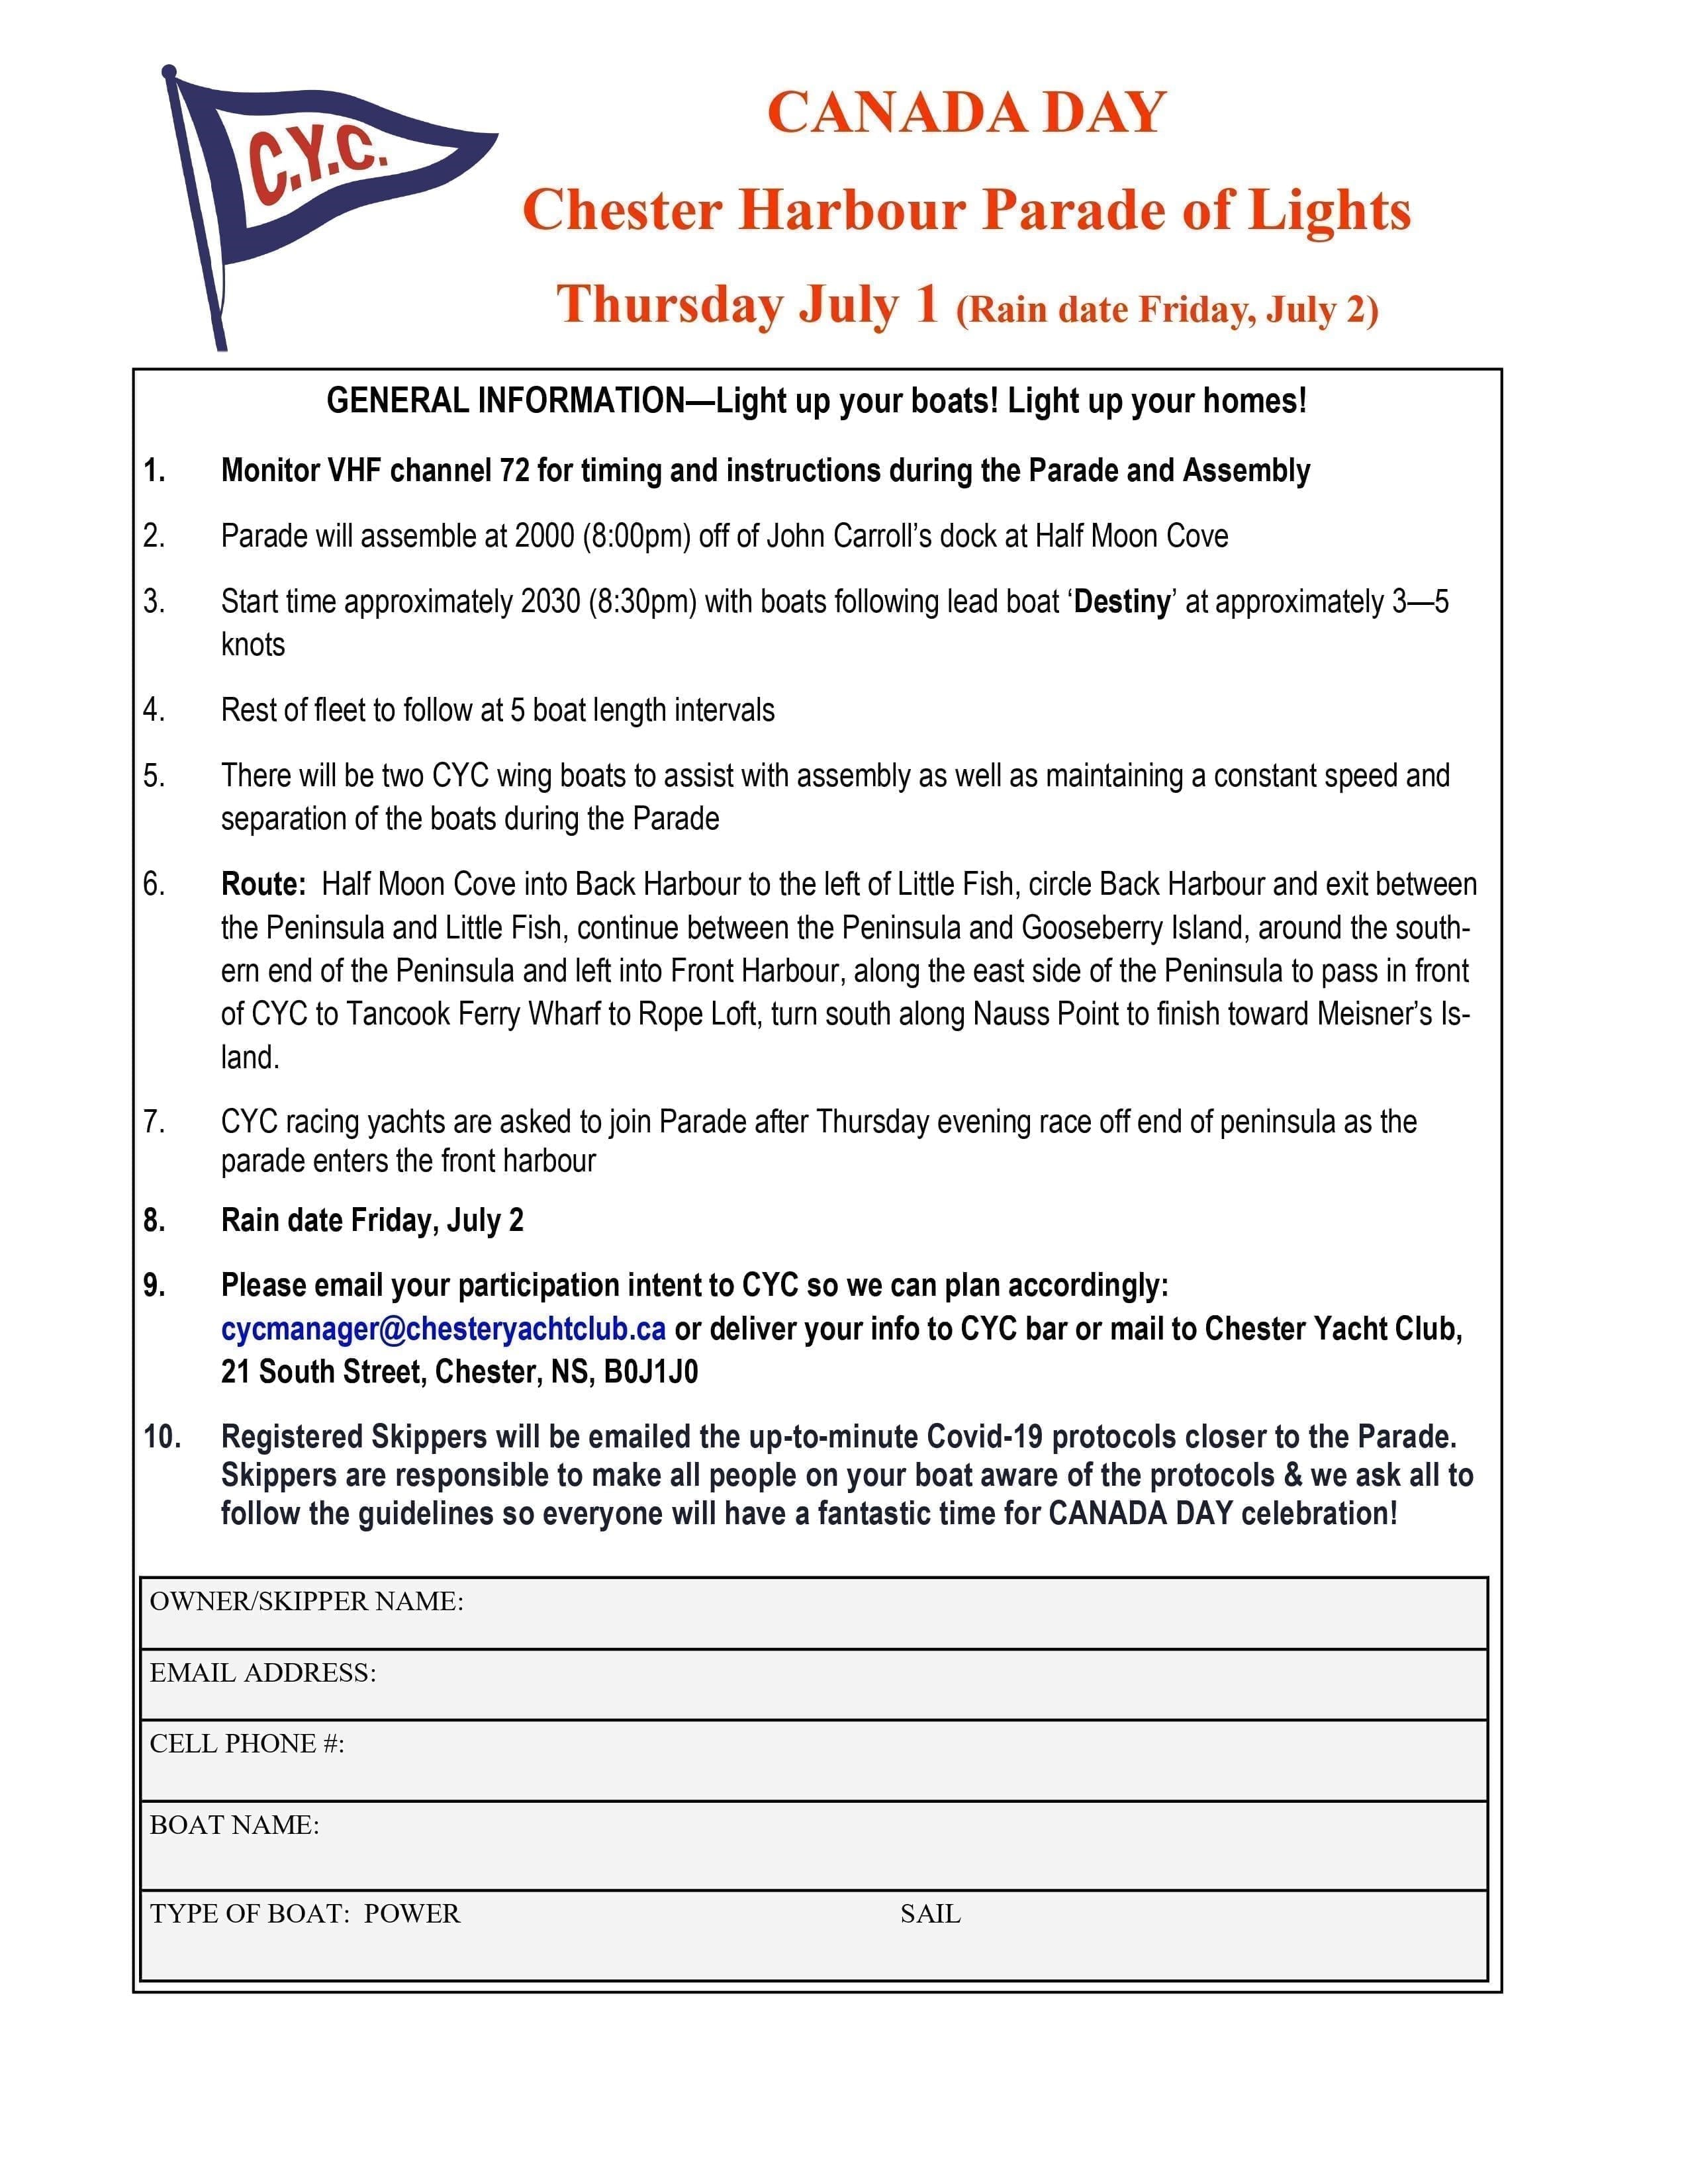 Skippers: Please register your boat for the Canada Day Parade of Lights so we can plan accordingly